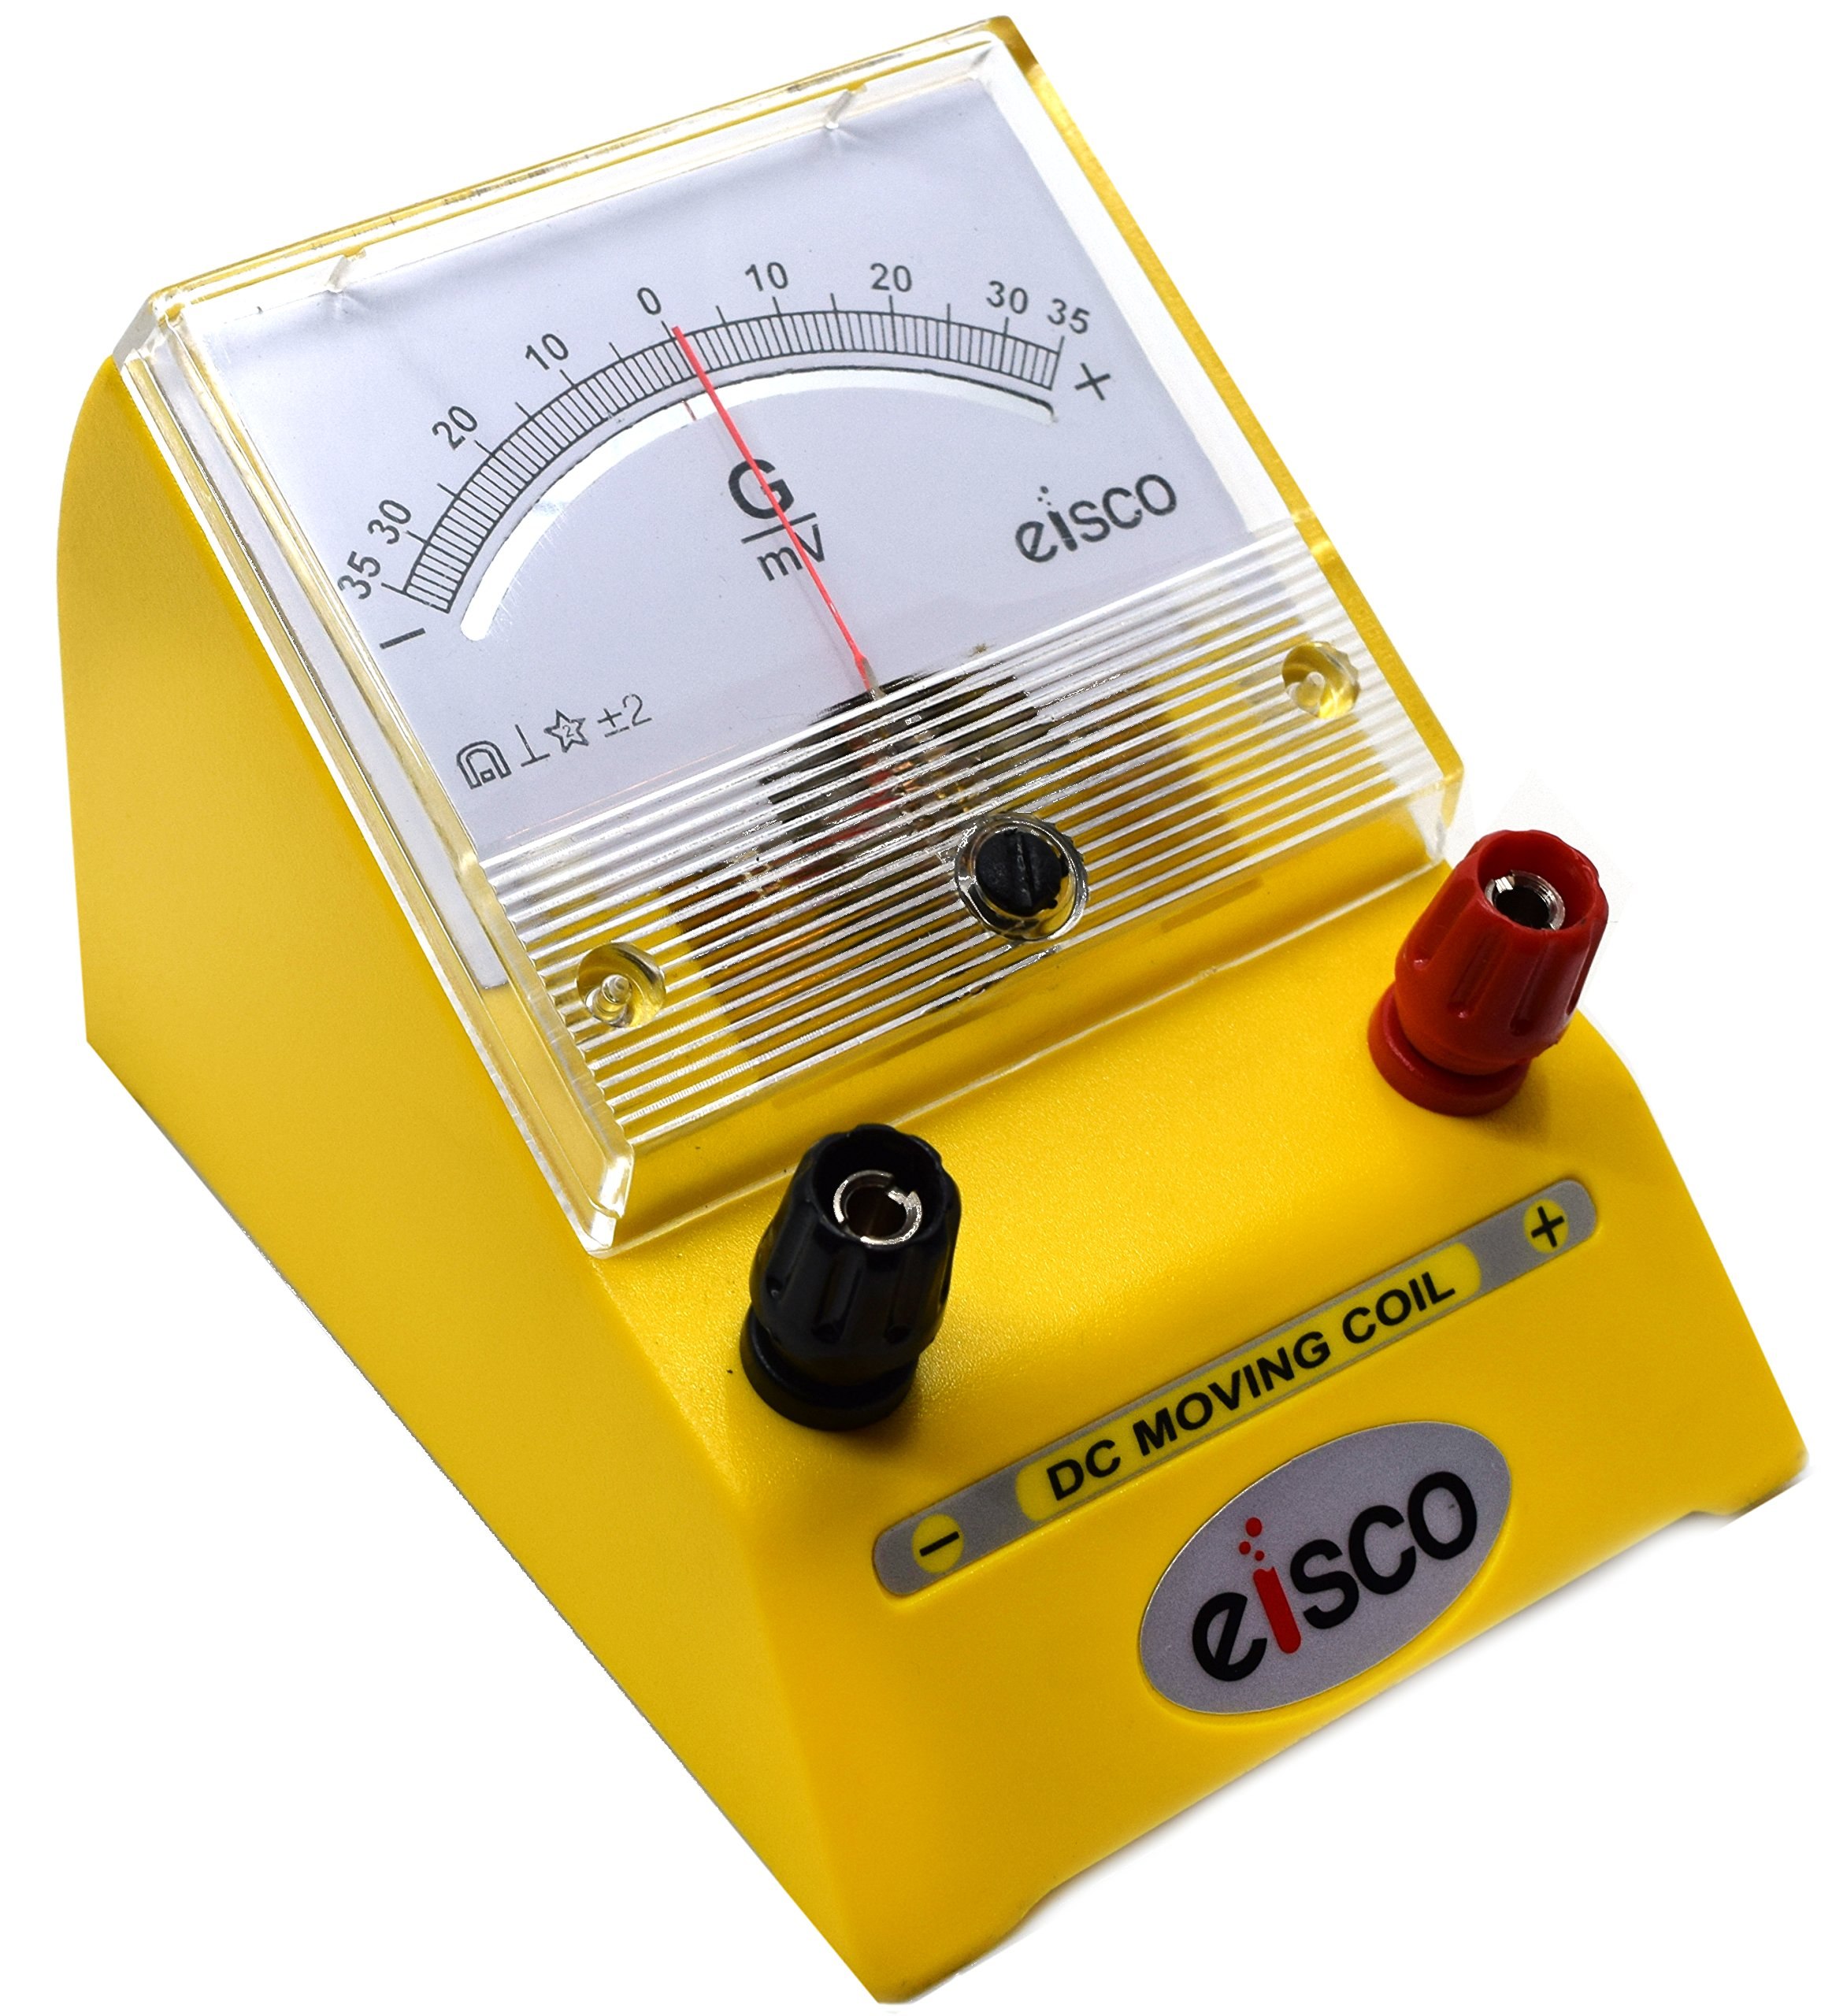 Moving Coil Meters DC Galvanometer - Type EDM-80, 35-0-35 mV Sensitivity 1mV/Div - Eisco Labs